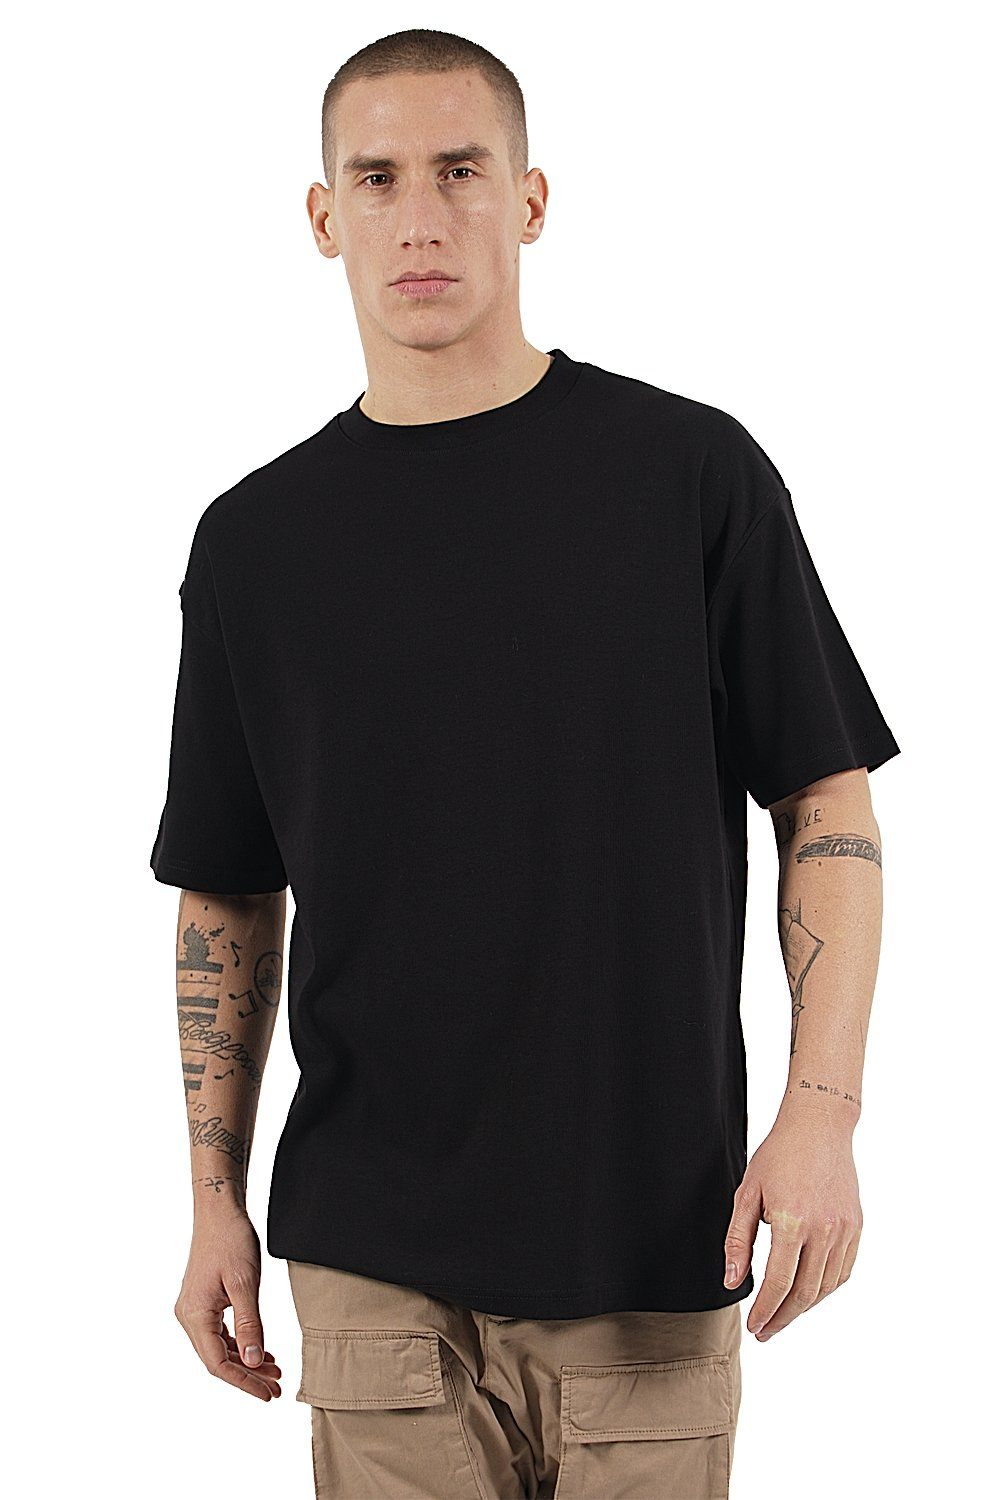 Heavy Oversized Basic Tee Black T-SHIRT PEGADOR